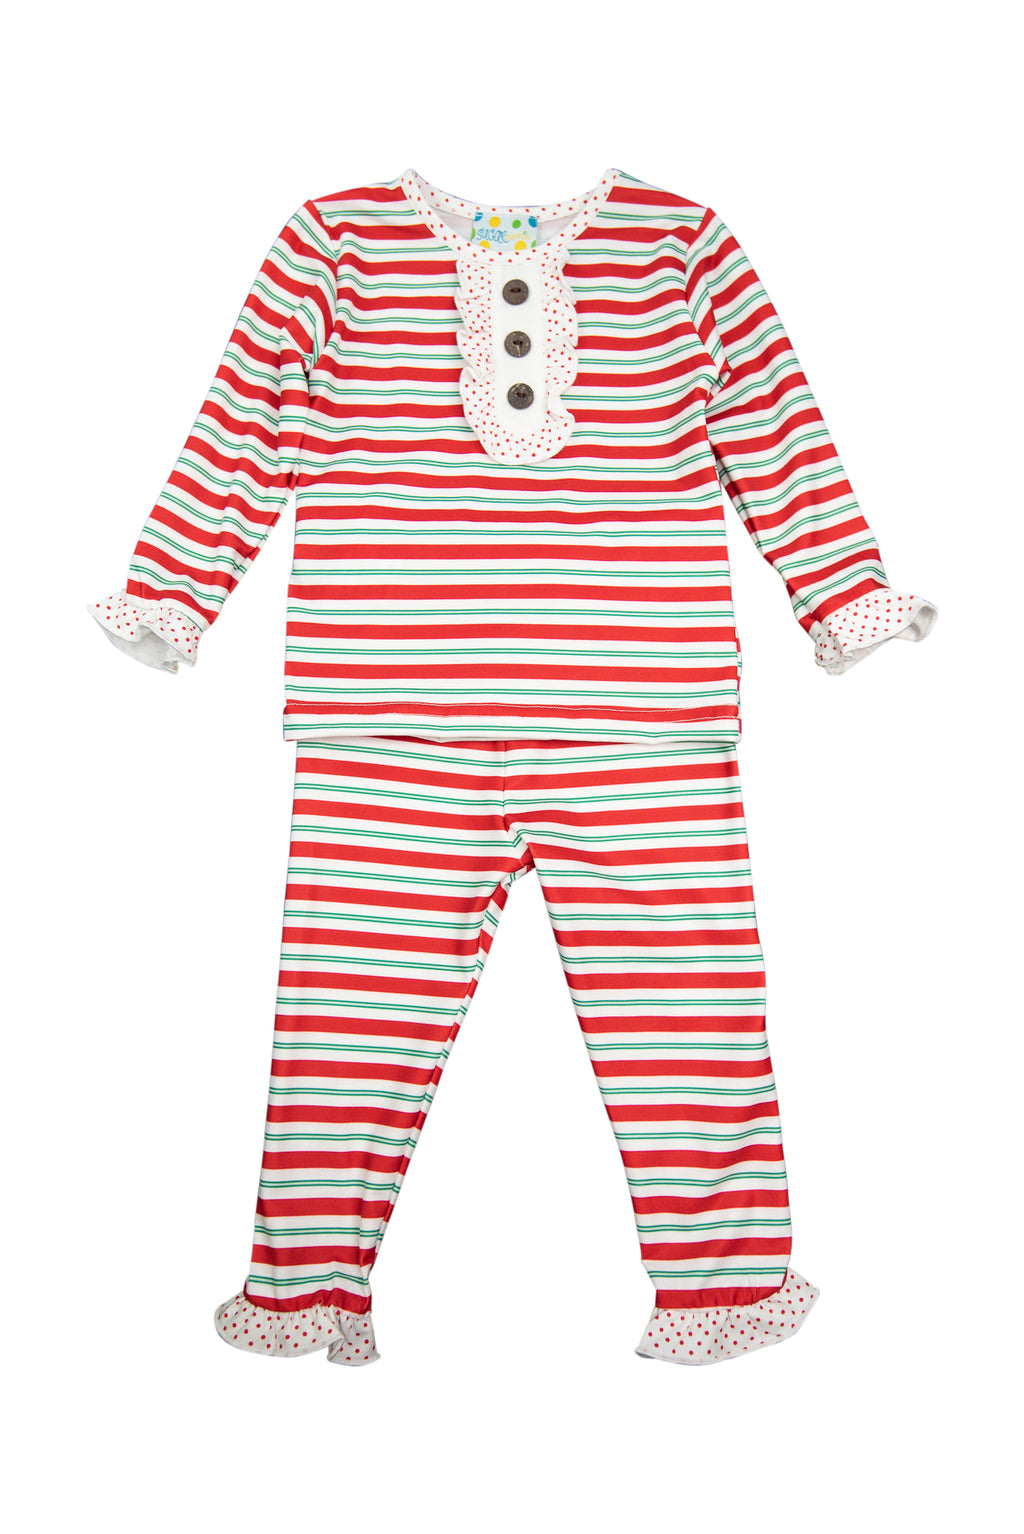 Girls Red/Green Stripe Pajama Pant Set